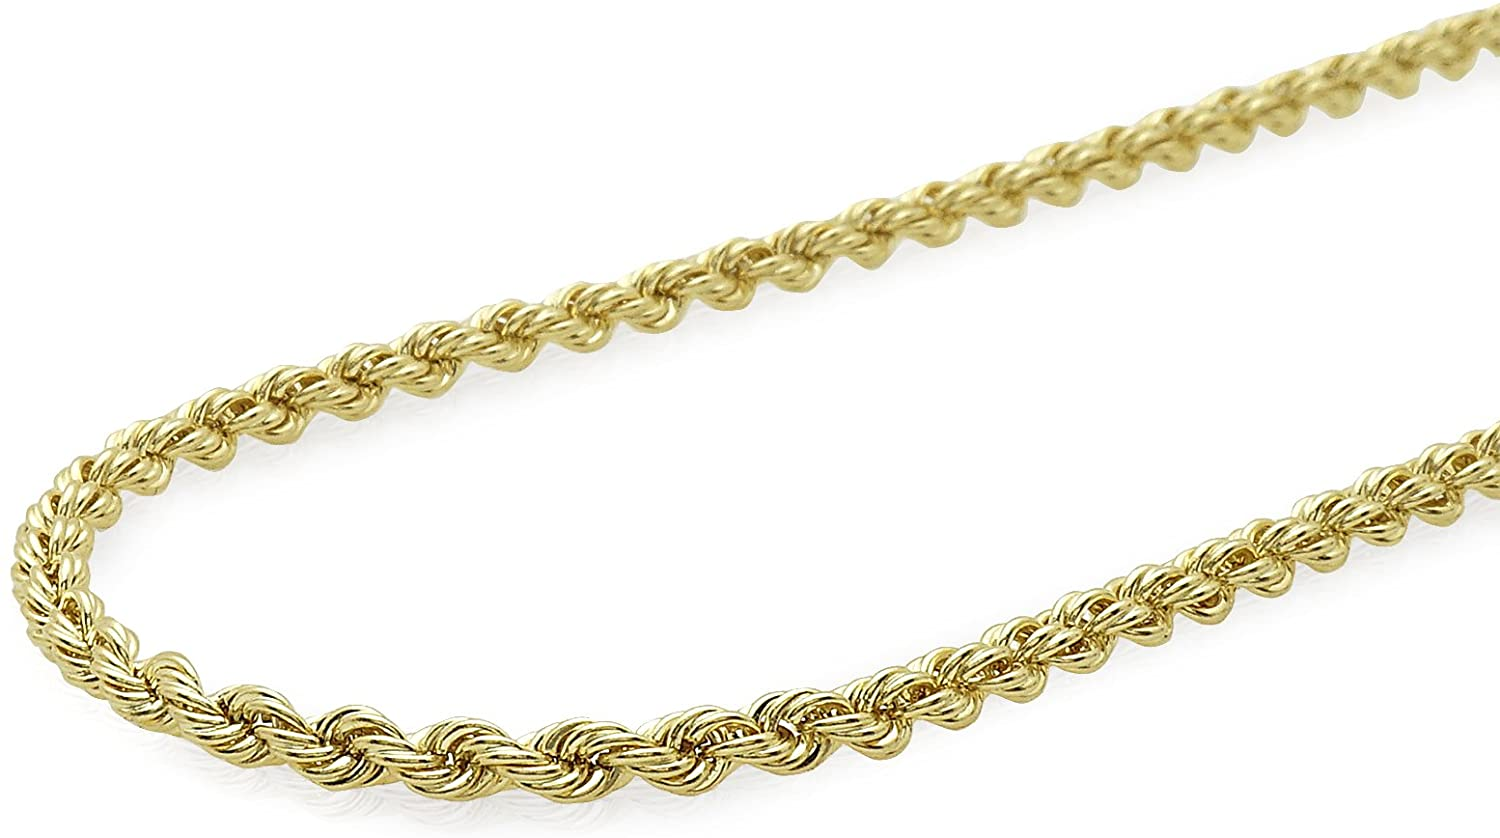 Verona Jewelers 10K Gold 2.5MM Diamond Cut Rope Chain Necklace for Men and Women- Braided Twist Chain Necklace 10K Necklace, 10K Gold Chain